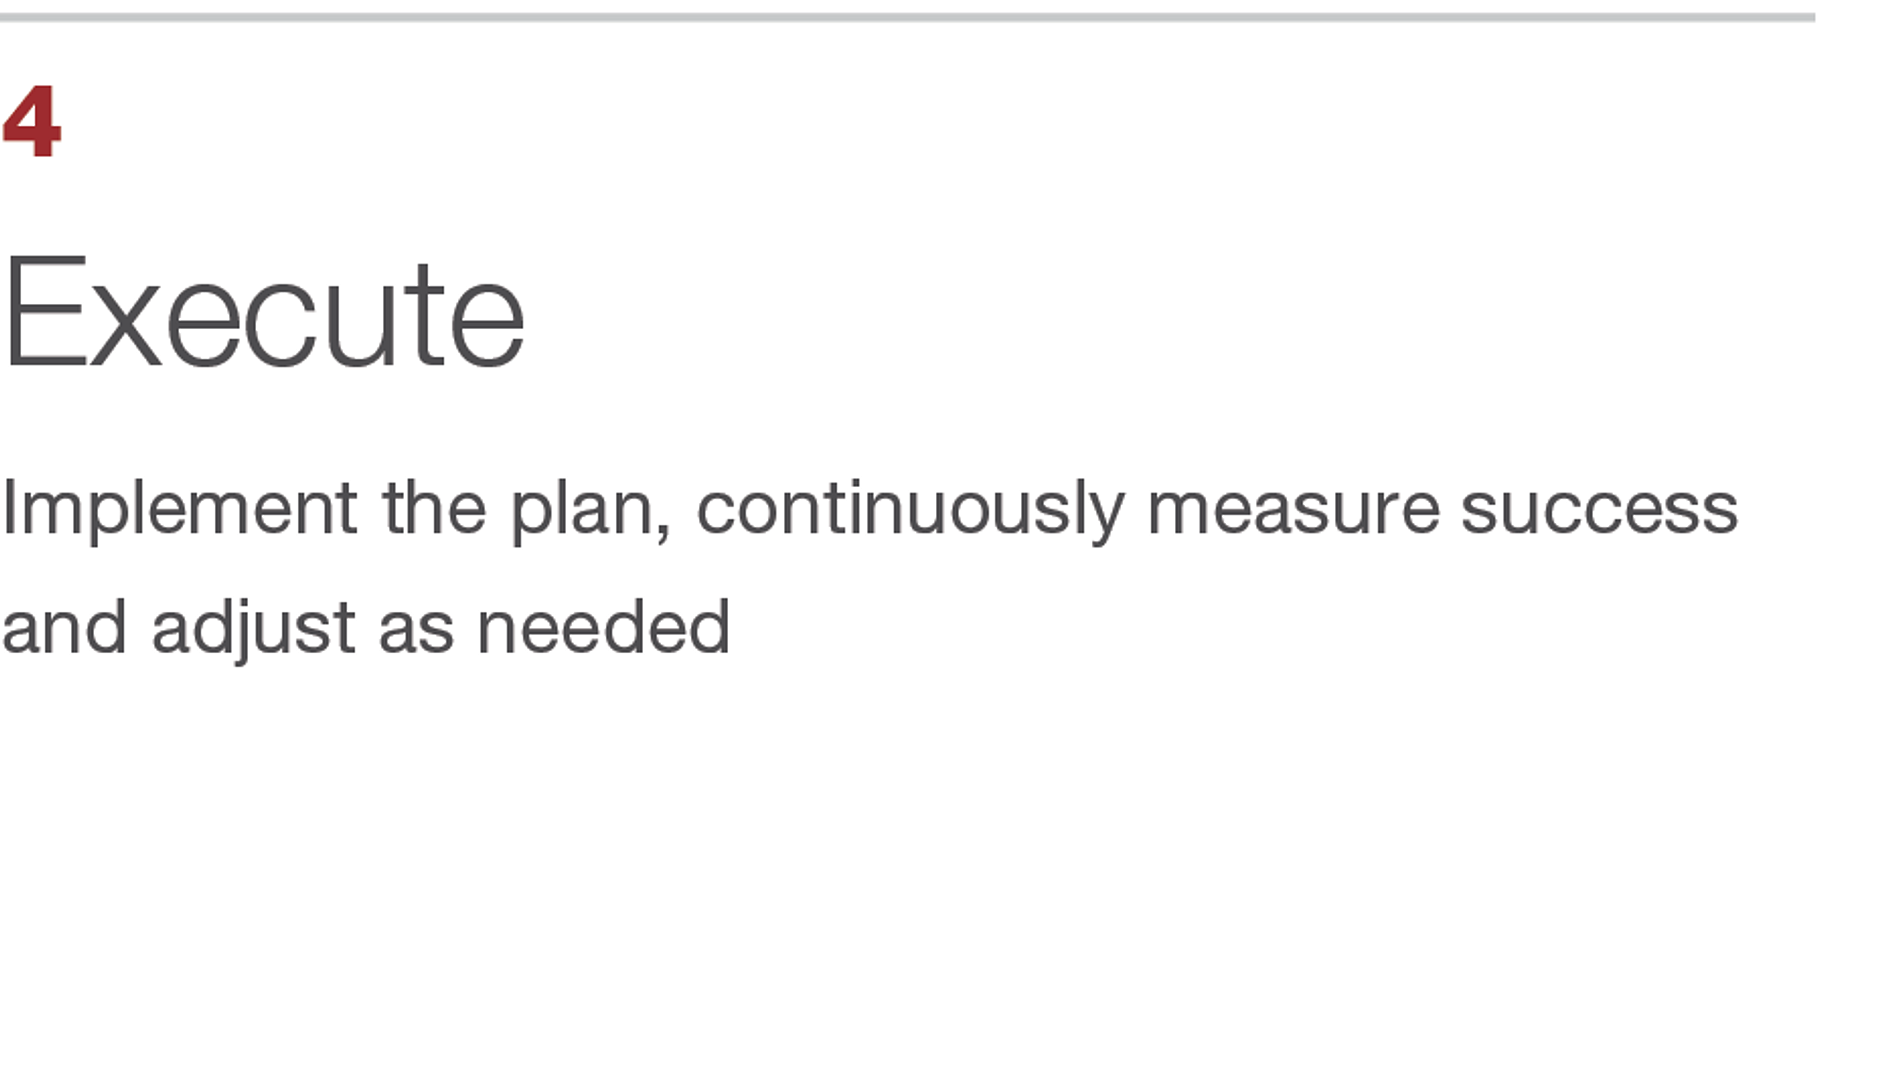 Execute. Implement the plan, continuously measure success and adjust as needed